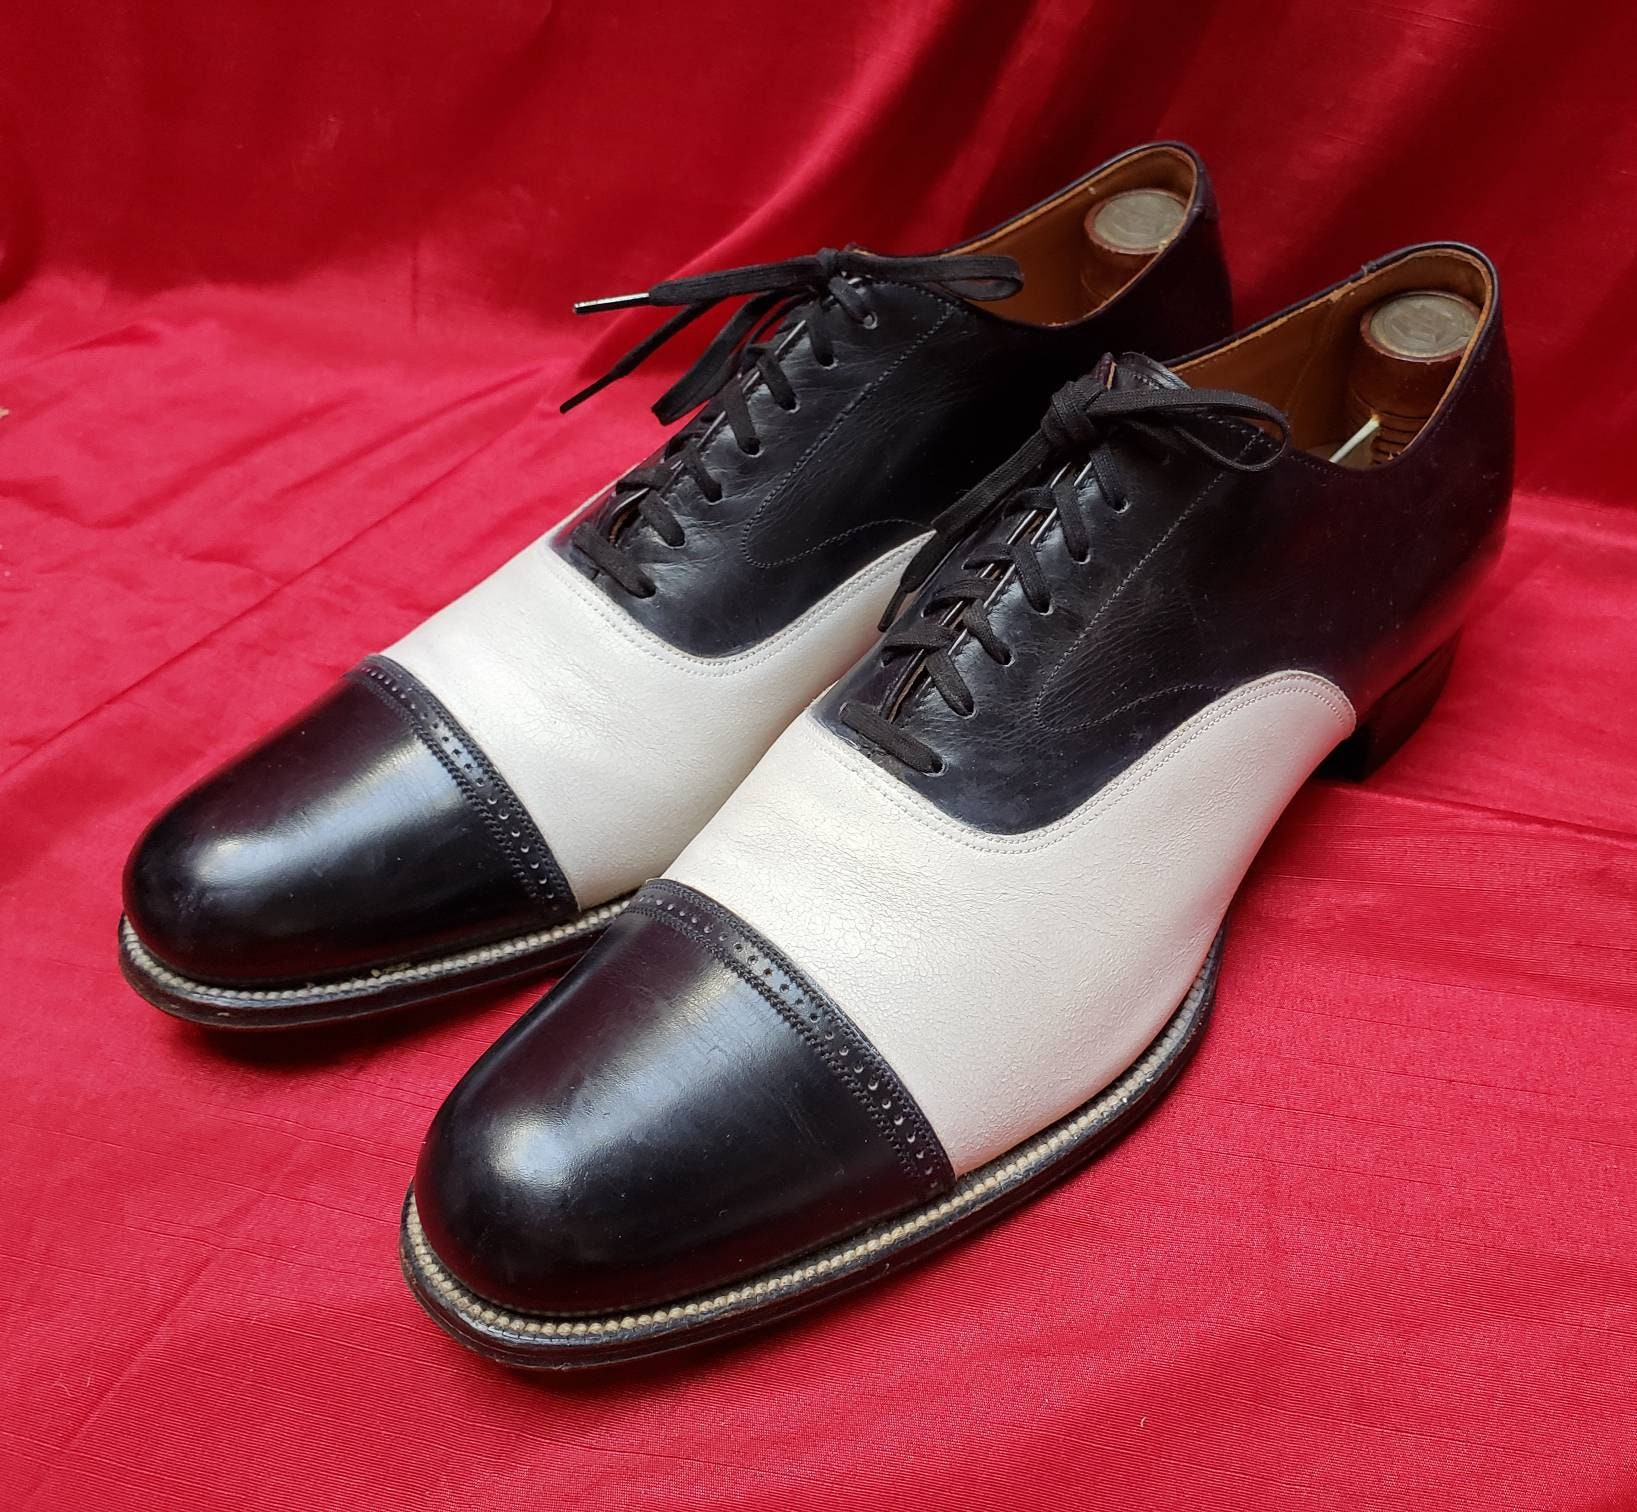 New 1930s Mens Fashion Ties Early  Stacy Adams Mens Vintage Two Tones Dress Shoes Near Mint Cap Toes Mens Spectators Beautiful Made in Usa L@@k $86.75 AT vintagedancer.com